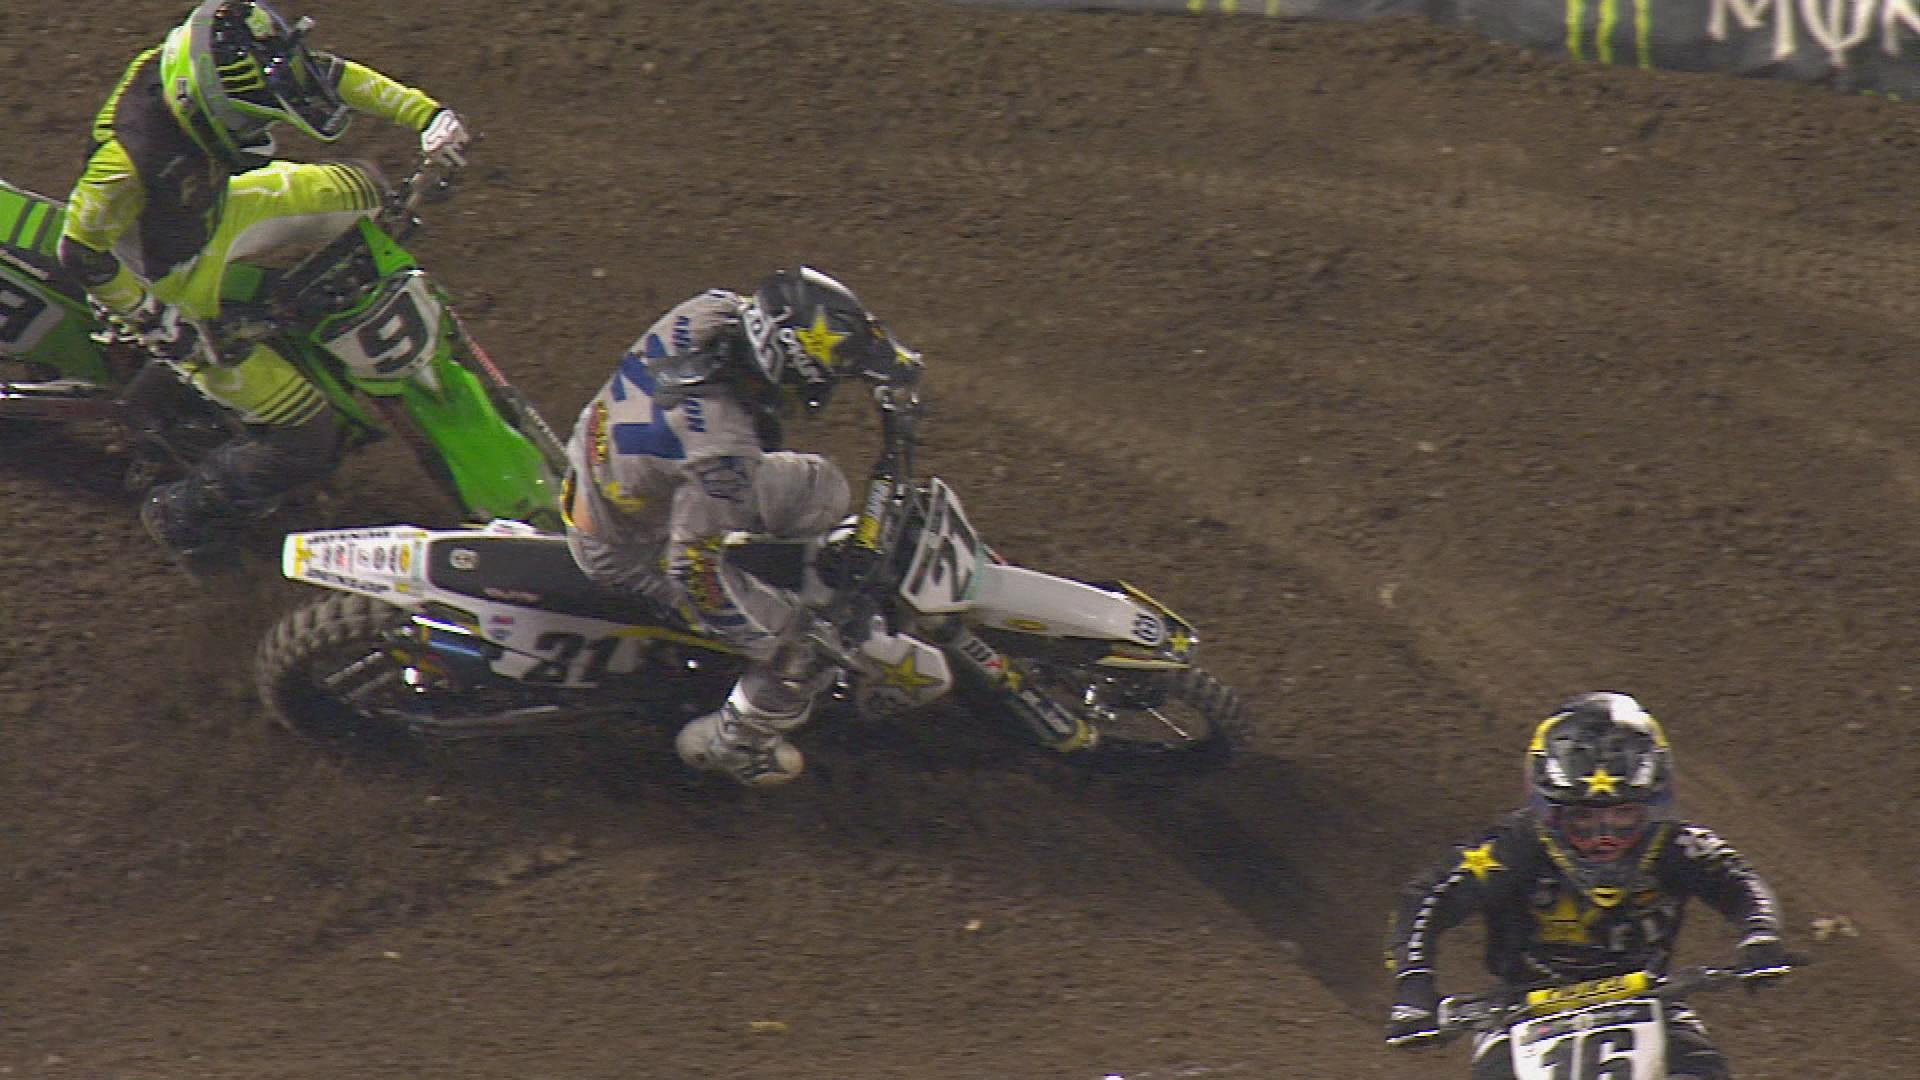 Highlights: Eli Tomac holds on to win 450 in Anaheim